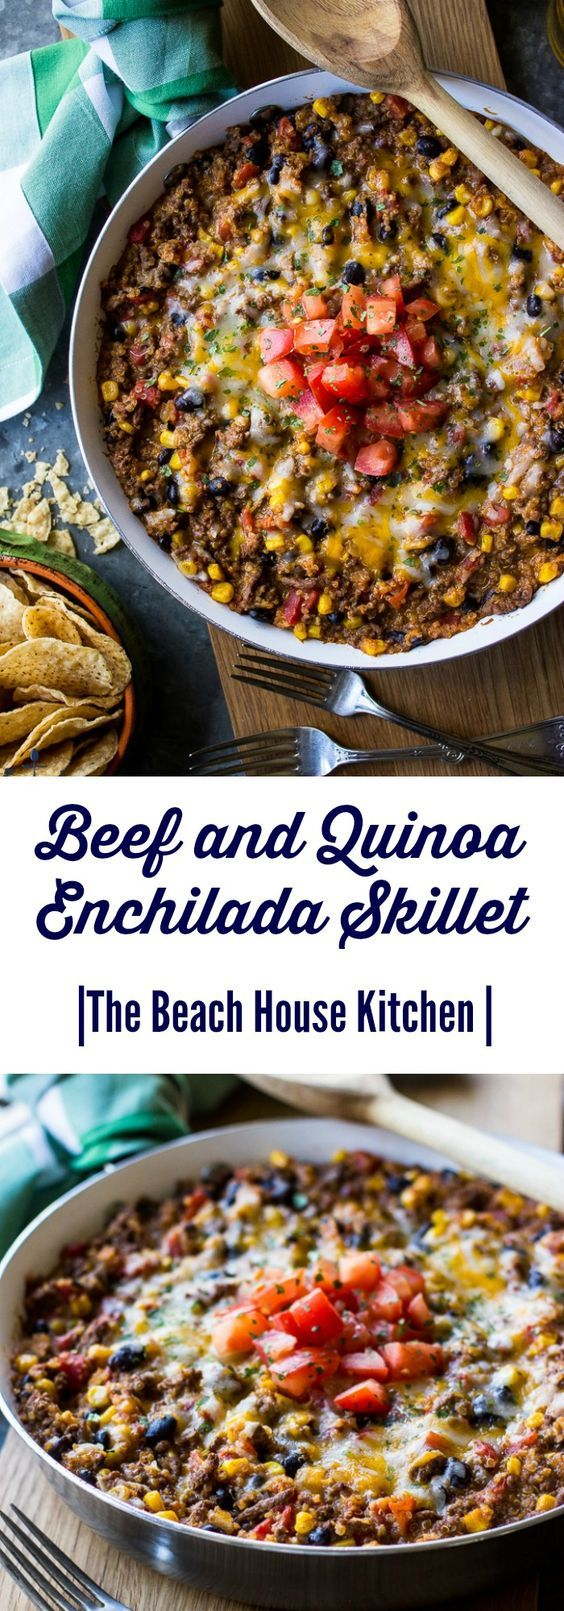 Photo of Beef and Quinoa Enchilada Skillet